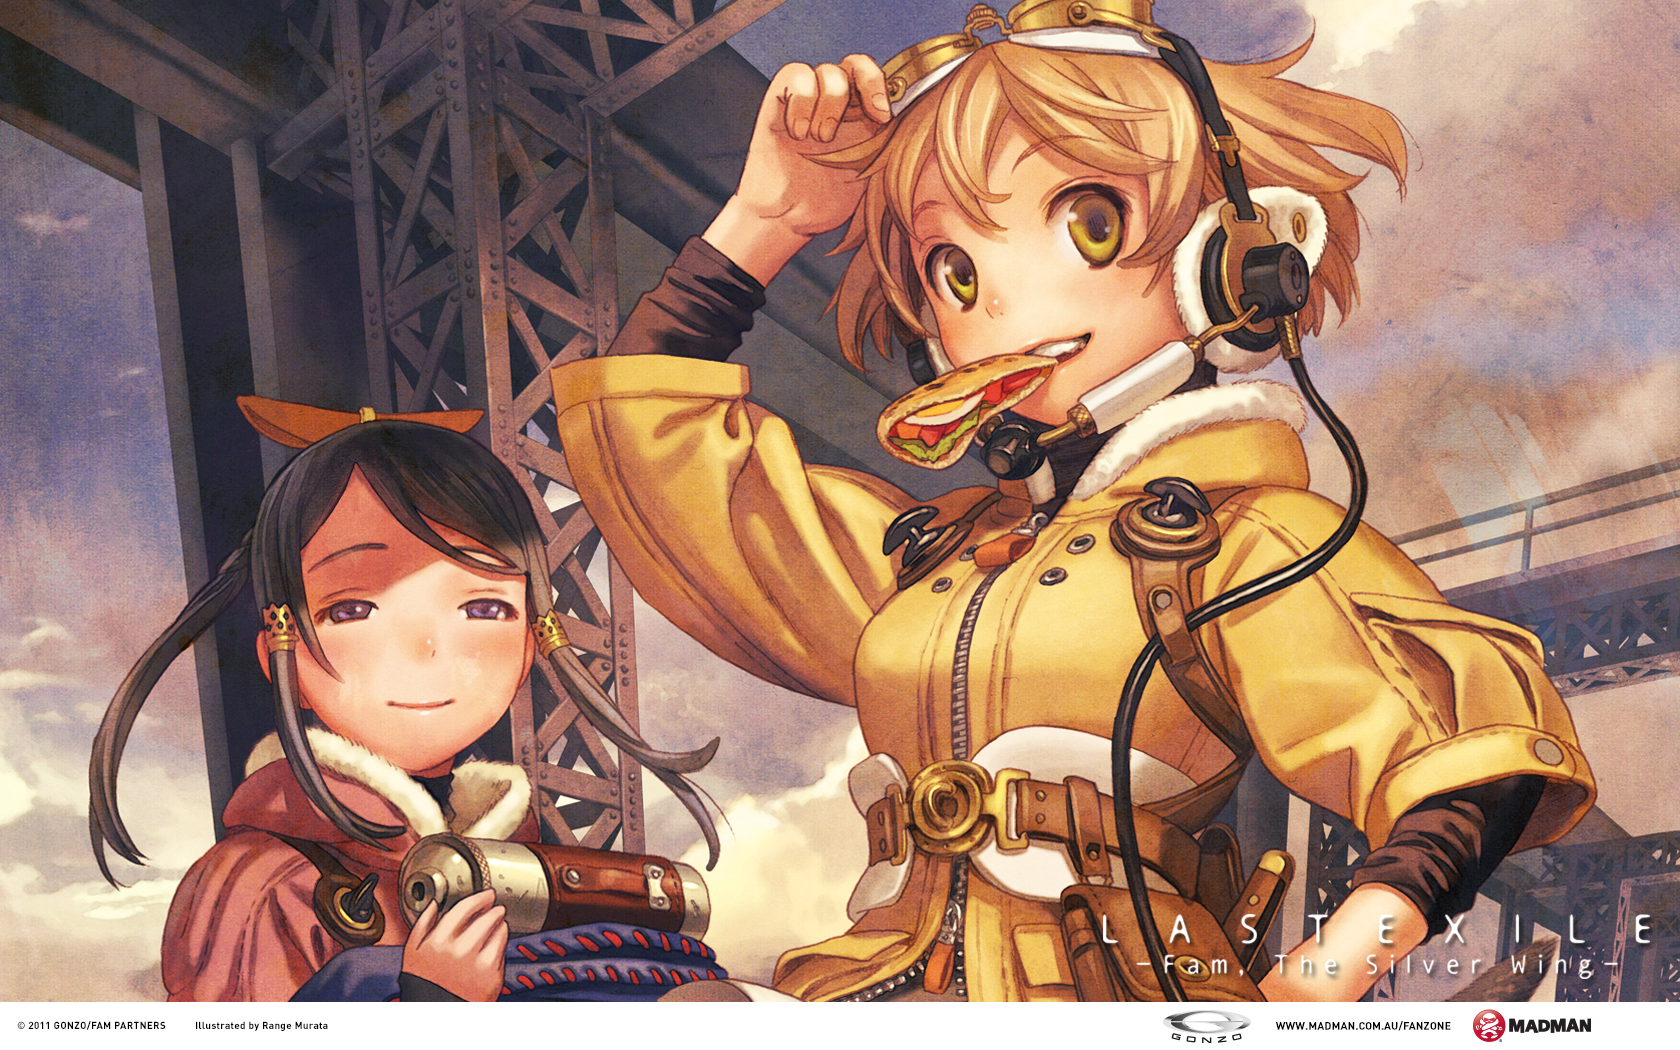 Last Exile  Fam the Silver Wing  Wallpapers   Madman 1680x1050